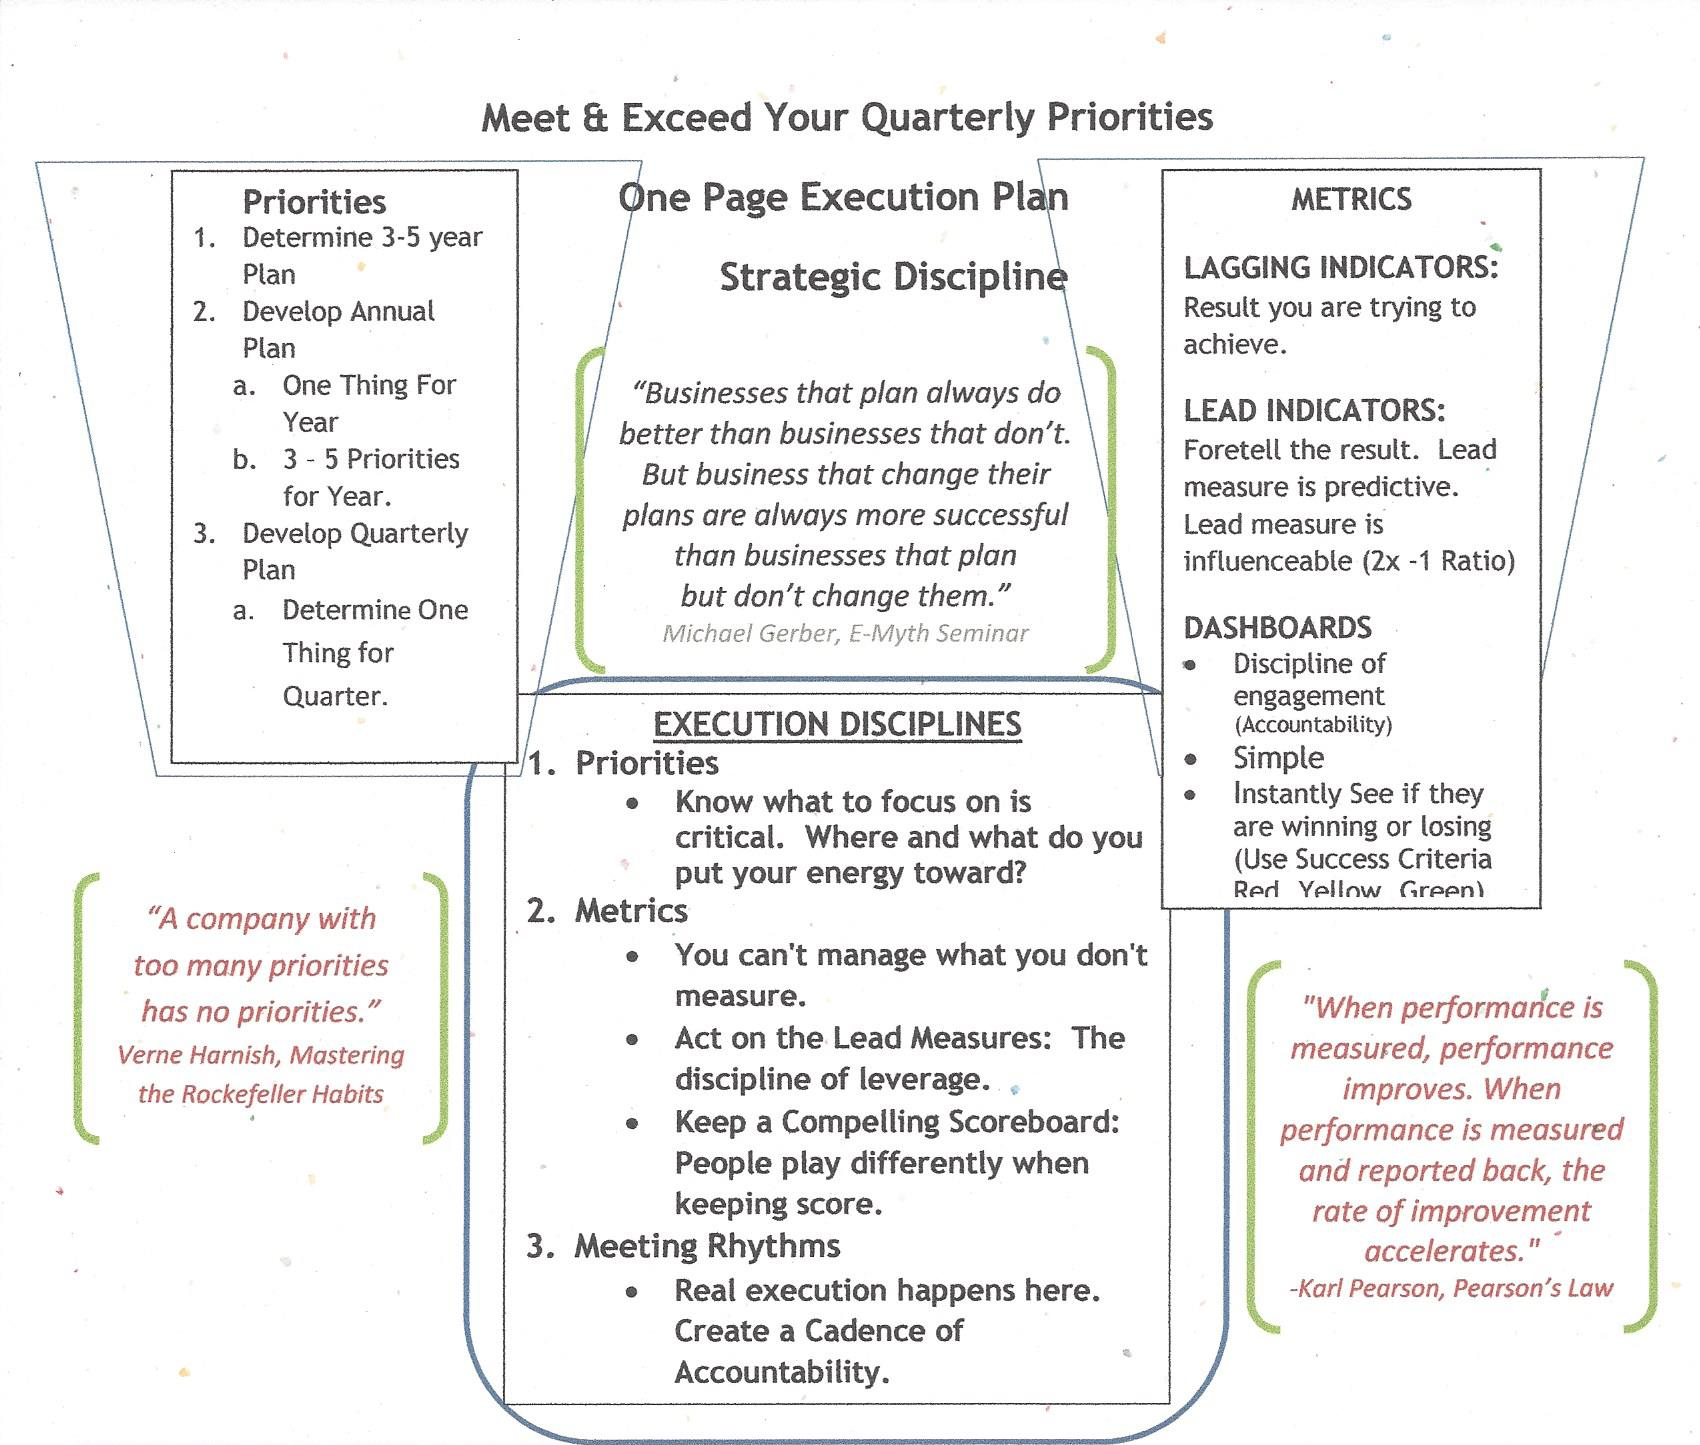 Top One Page Execution Plan - Meet or Exceed Quarterly Priority.jpg